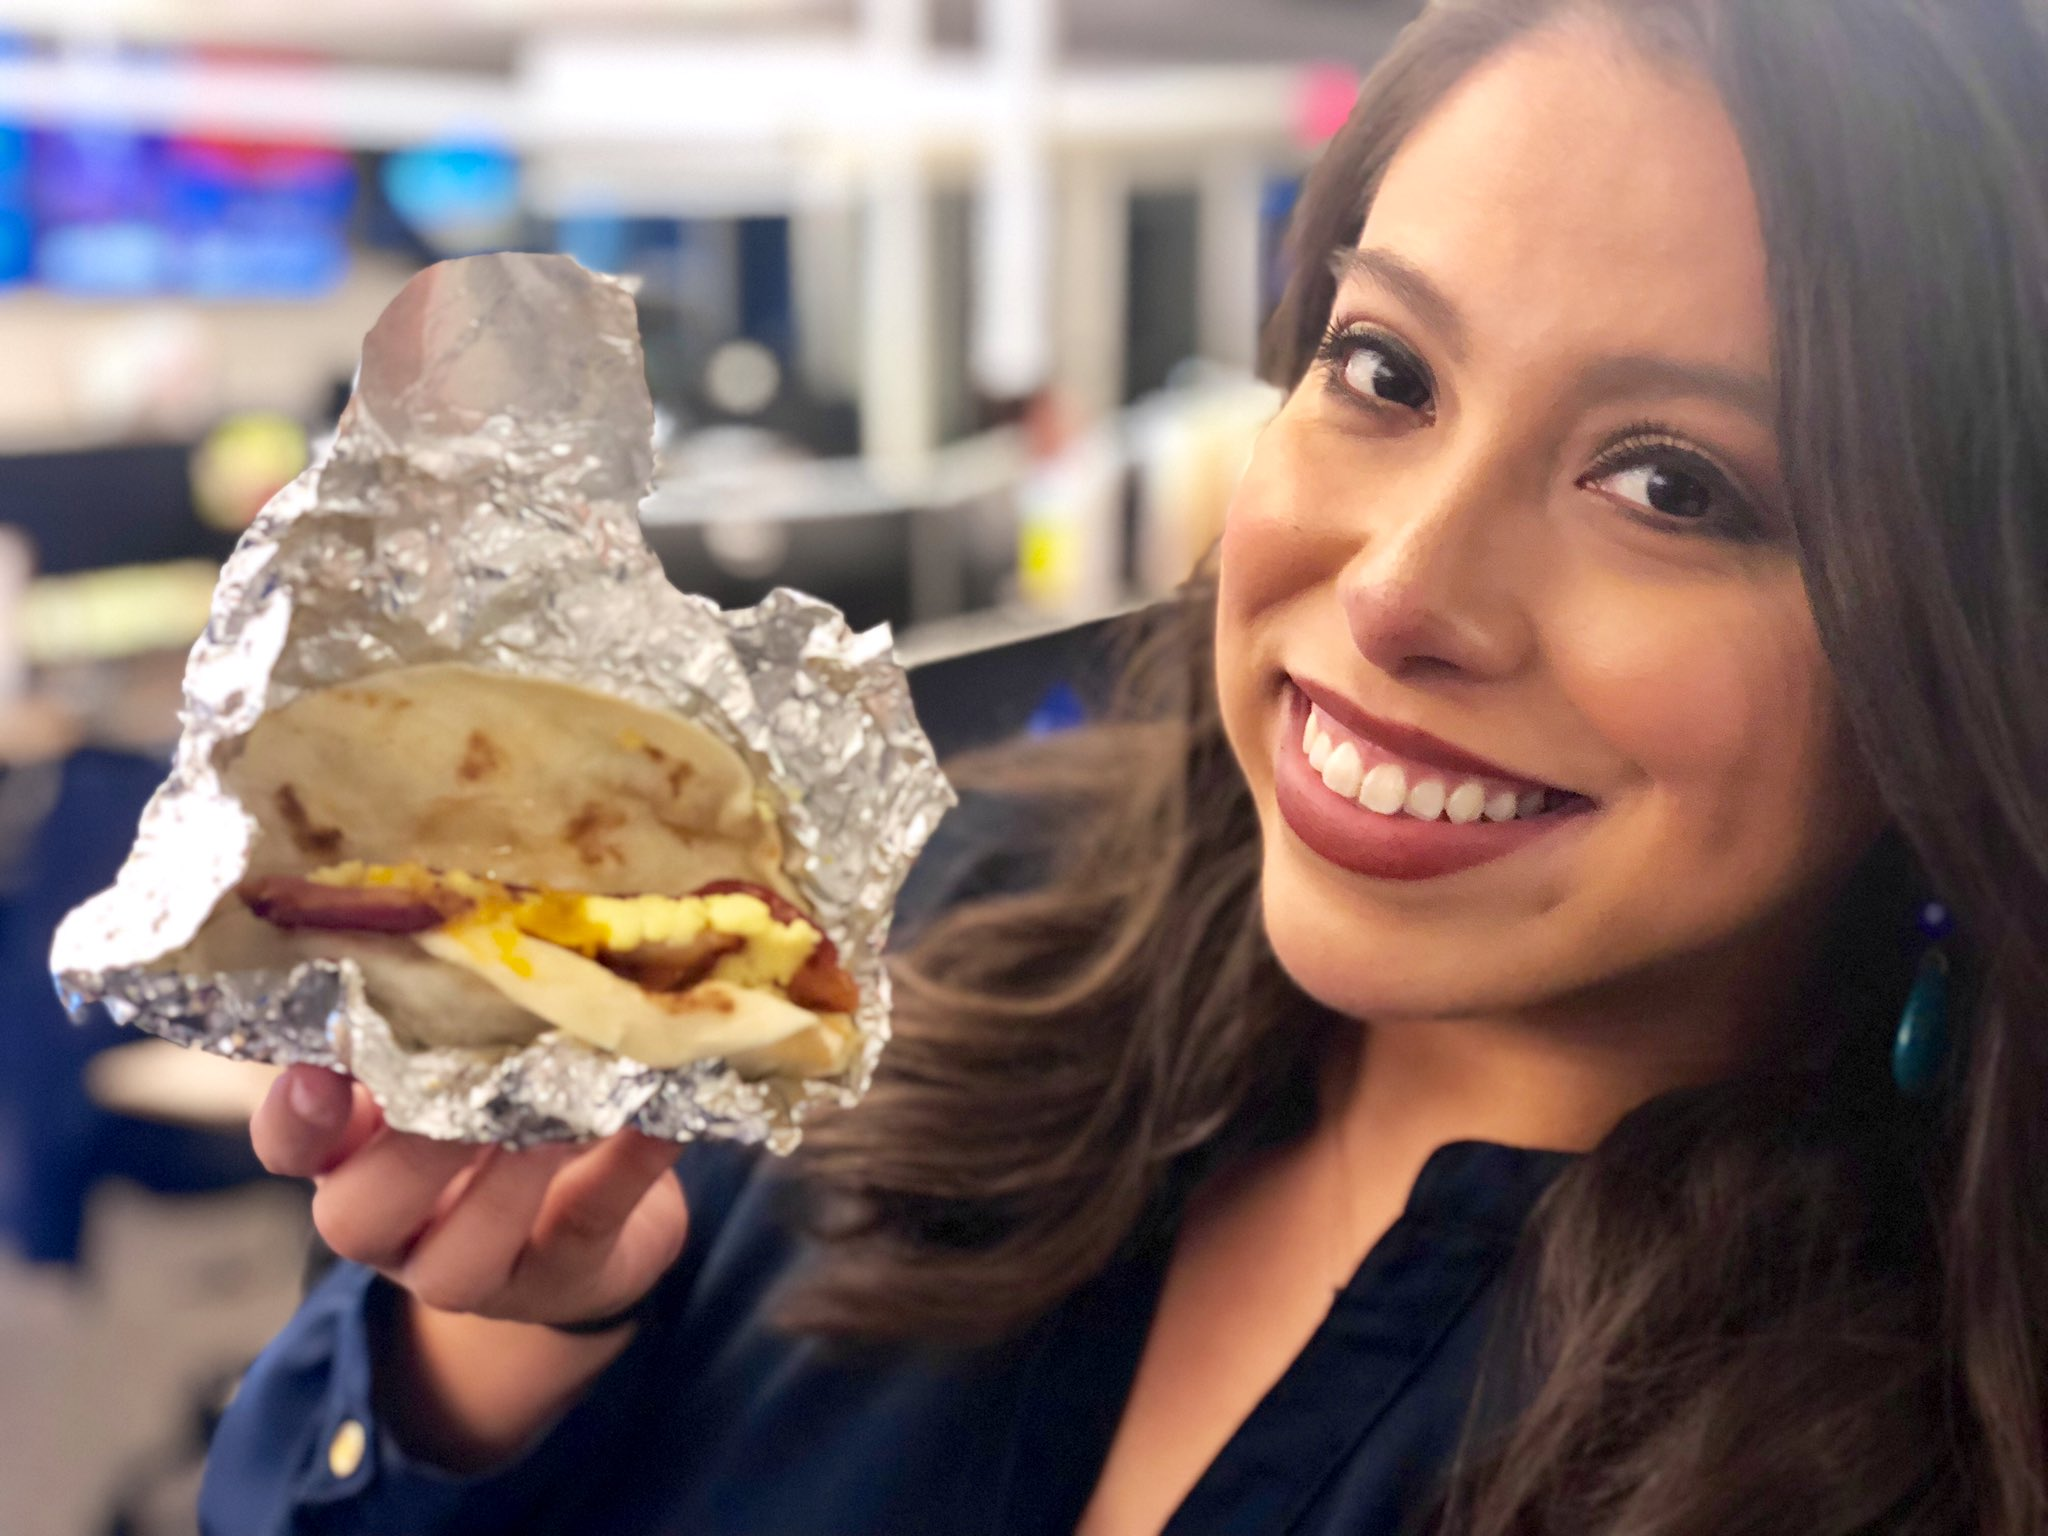 It's #NationalTacoDay!! ❤️🌮❤️ Thanks to my awesome EP (@weswilson4) for saving me a bacon, egg and cheese breakfast taco!  📸: @ToddKXAN https://t.co/6YRBgFjKc7